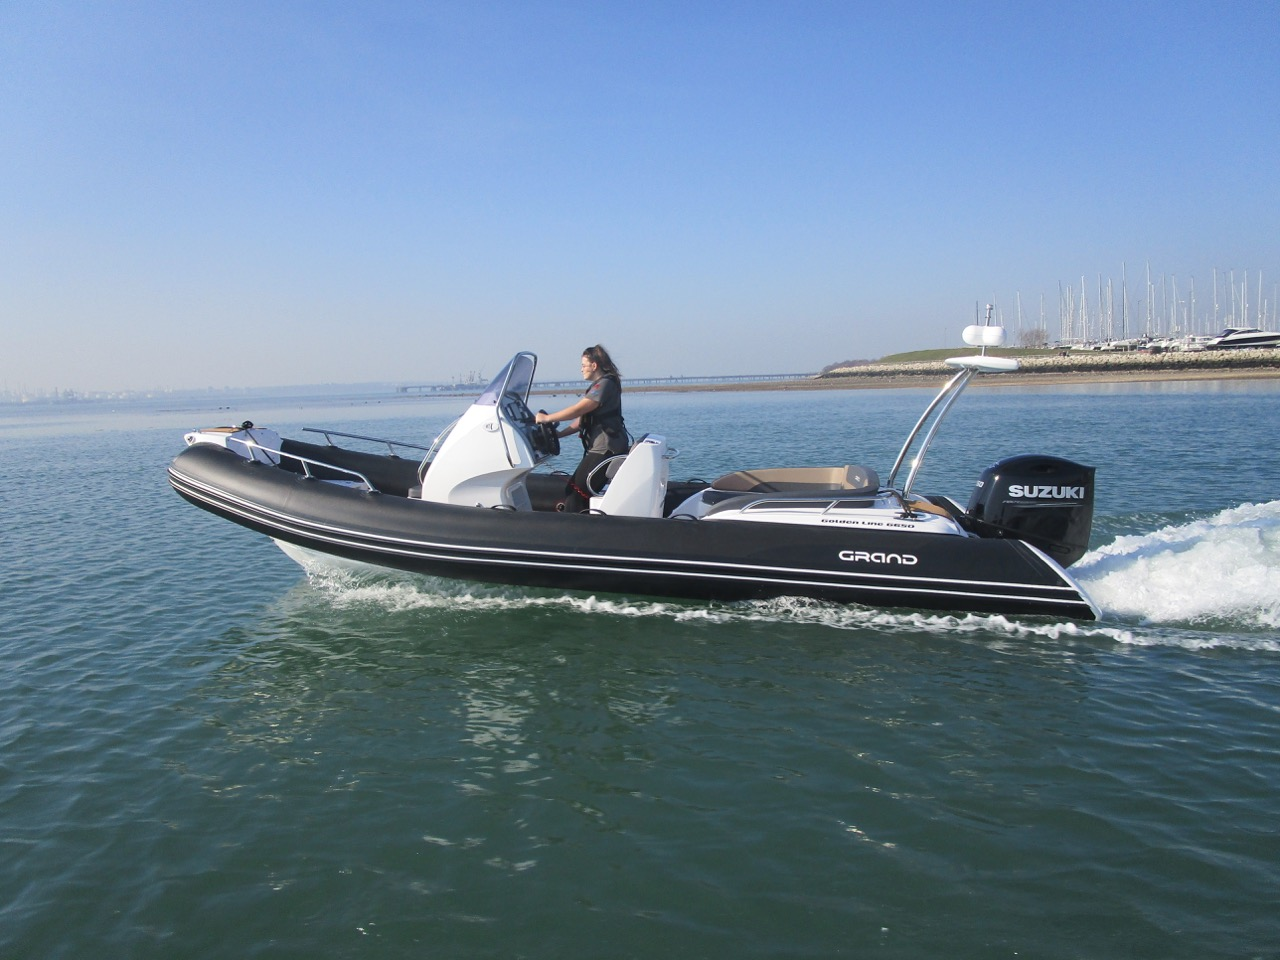 Grand RIB Golden Line G650 going to The Solent